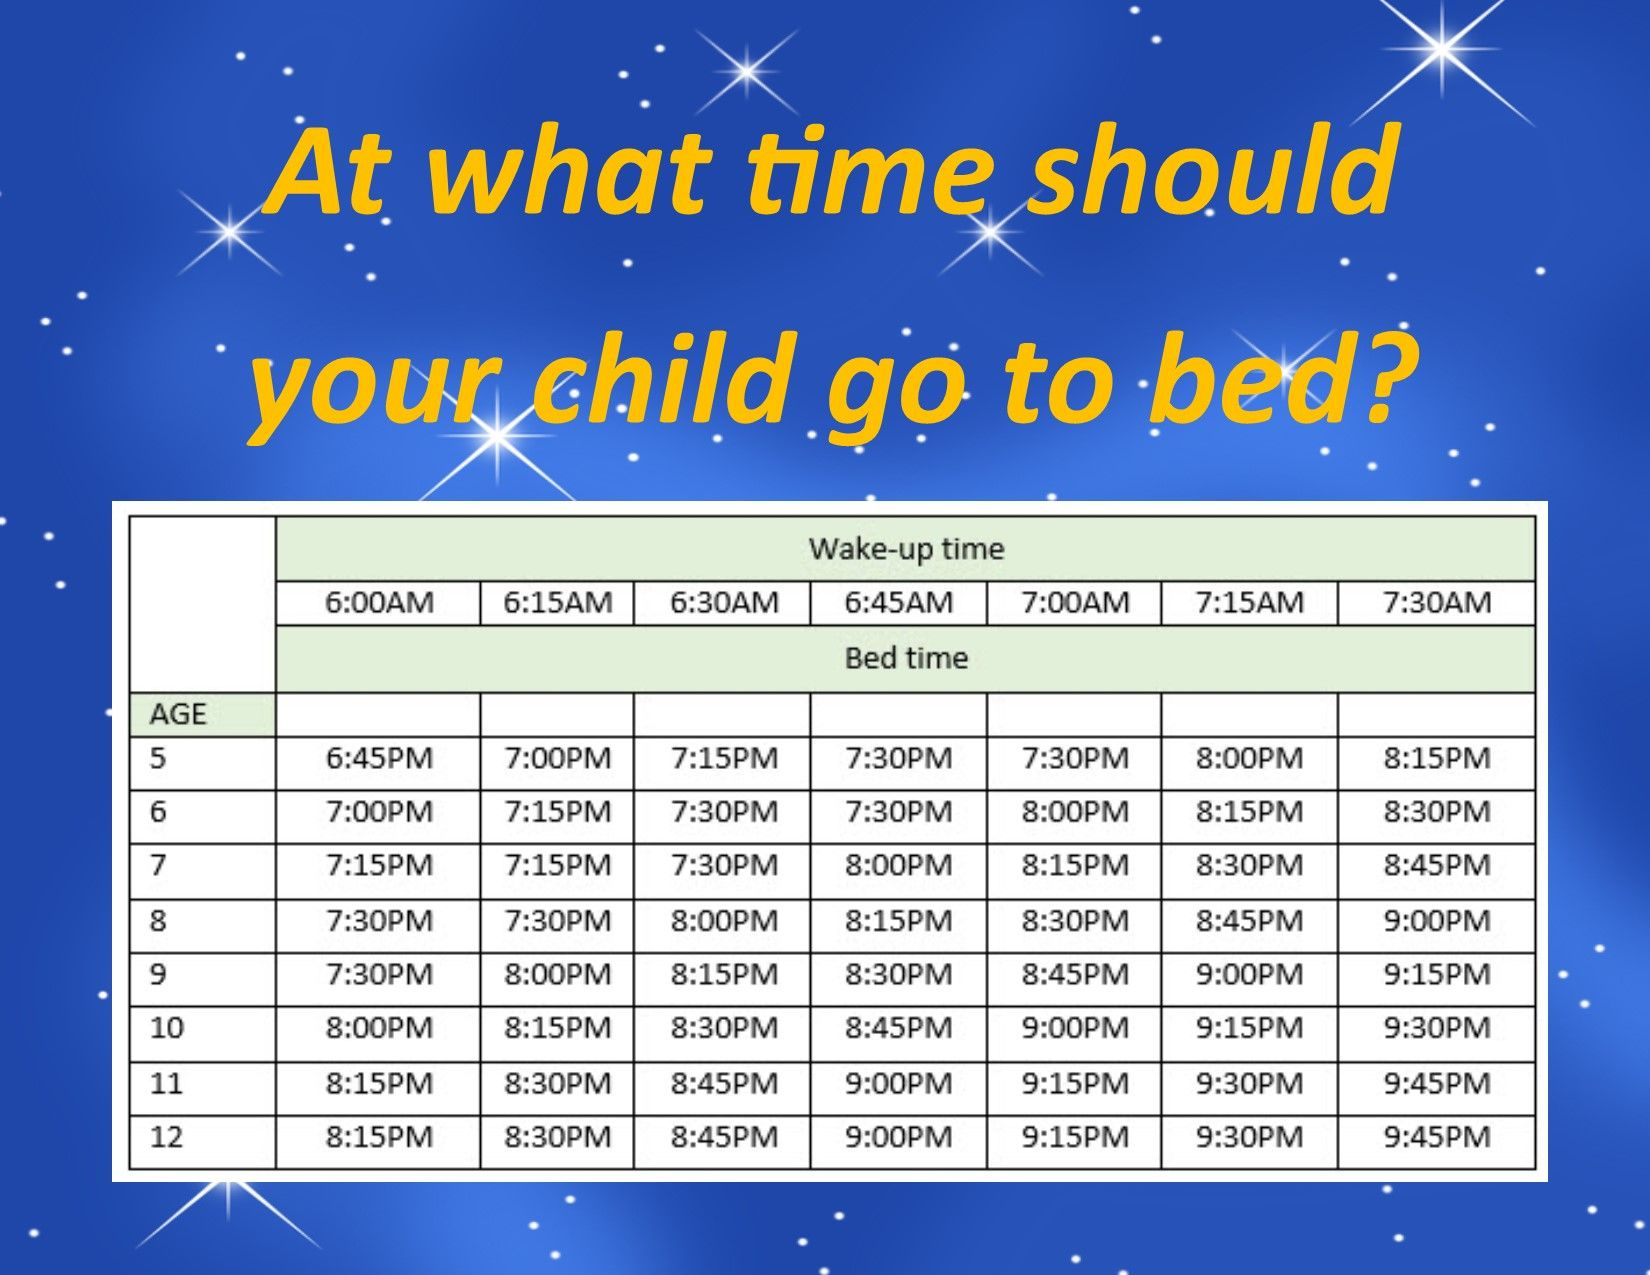 At what time should your child go to bed? Children